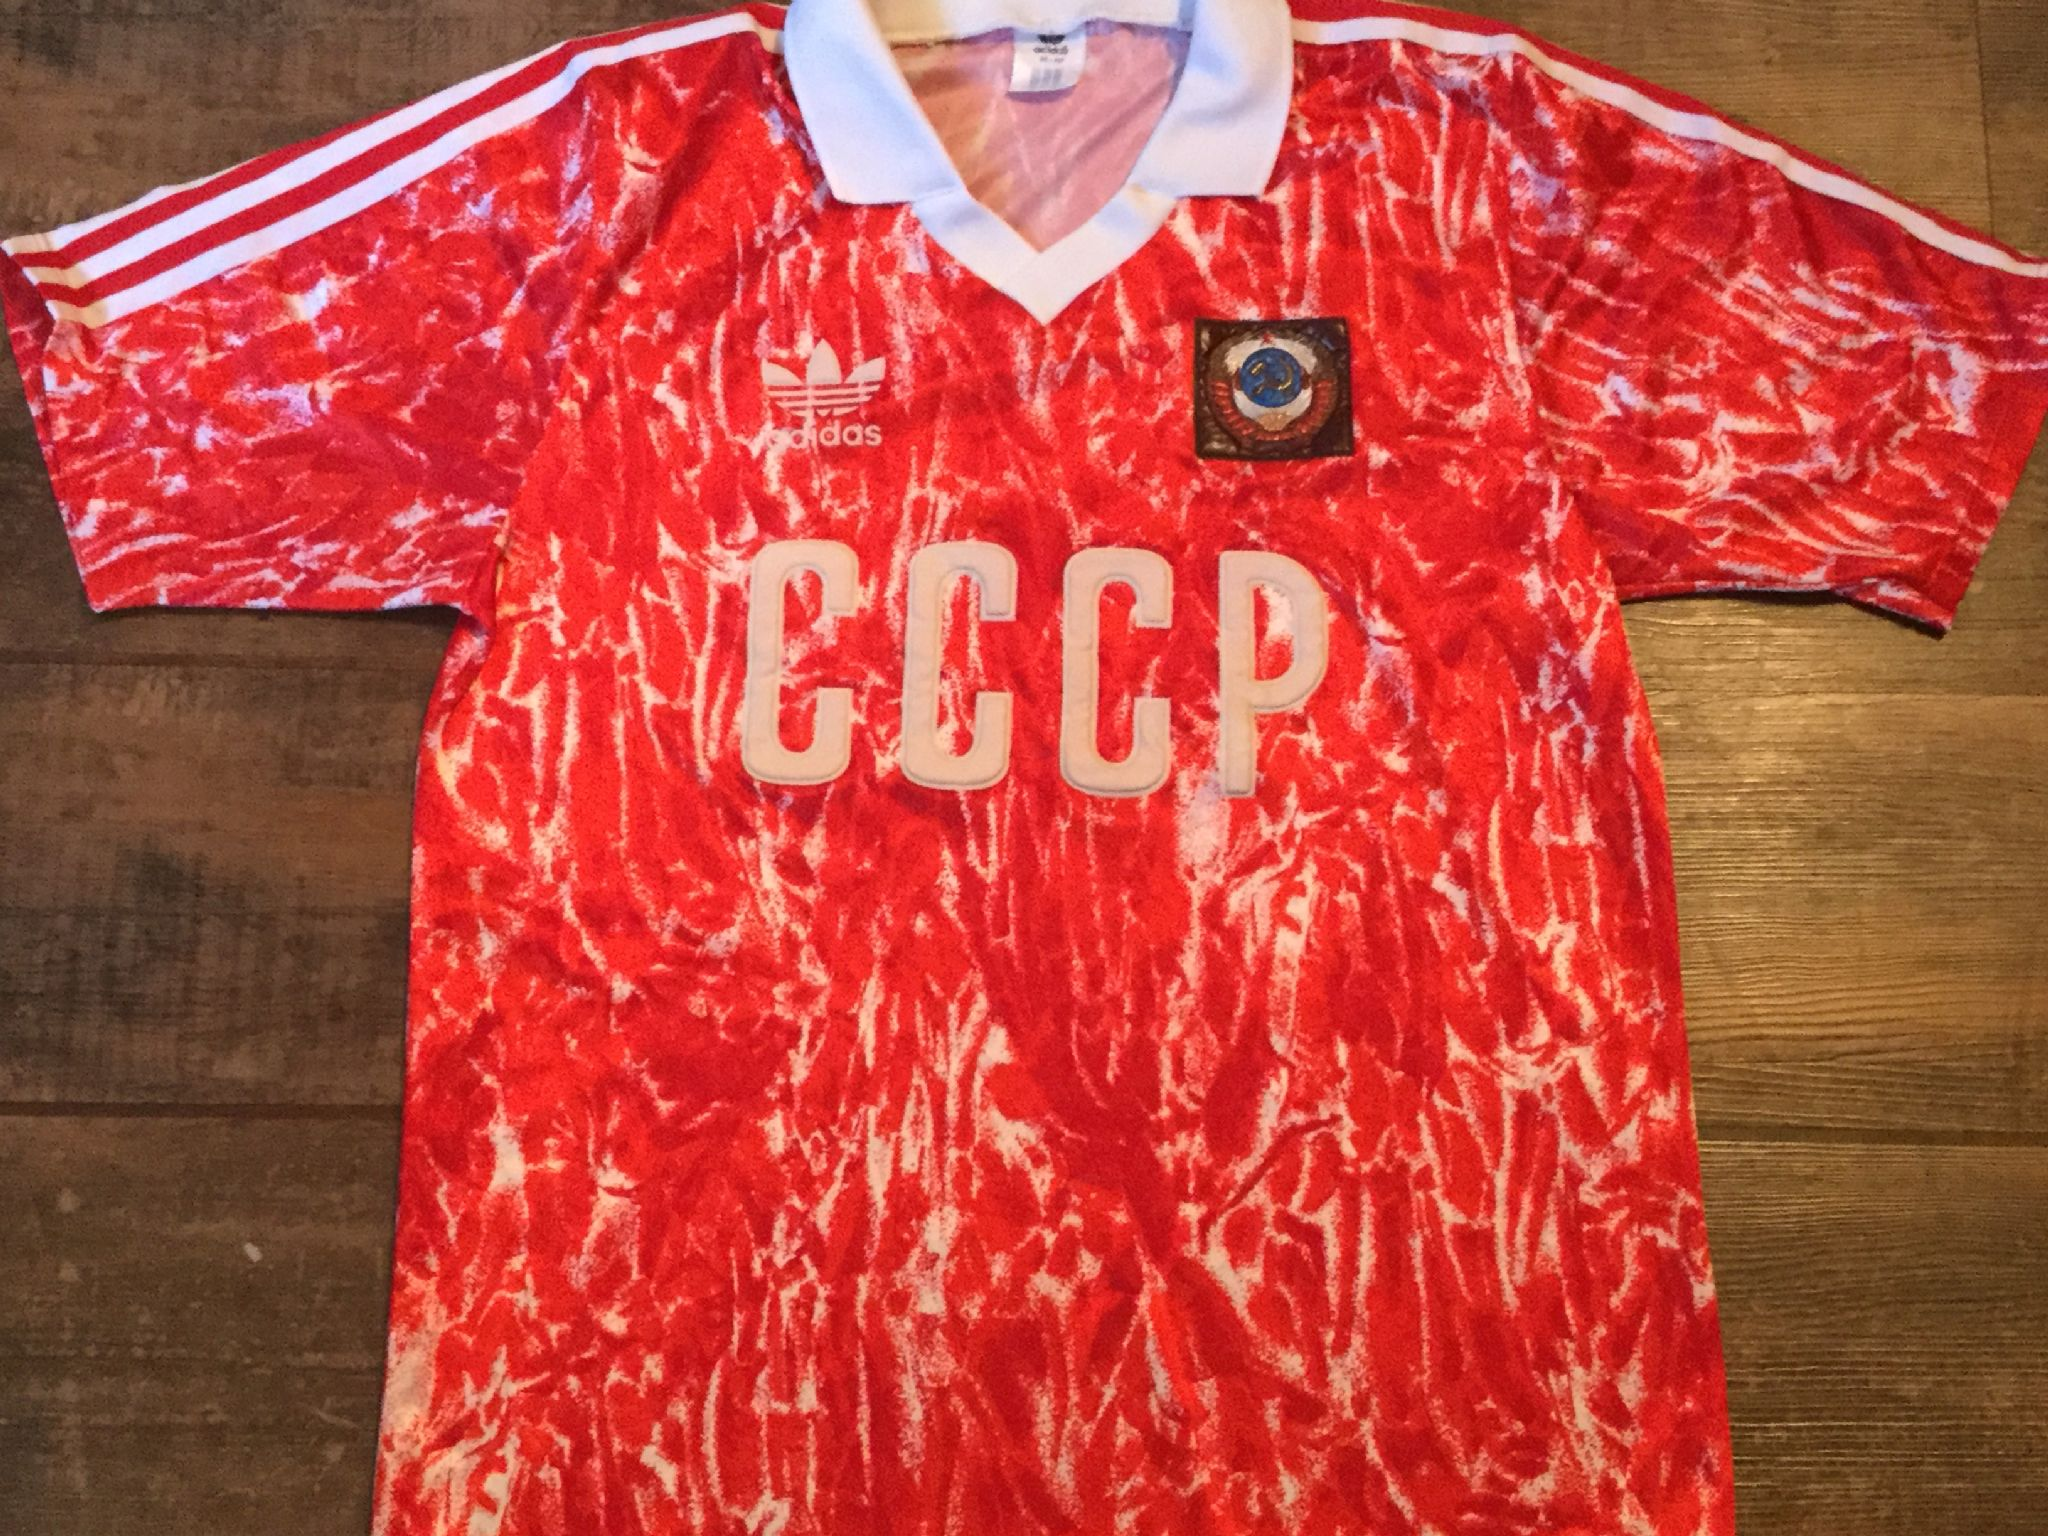 reputable site 178f7 f29d8 Global Classic Football Shirts | 1989 USSR Vintage Old ...